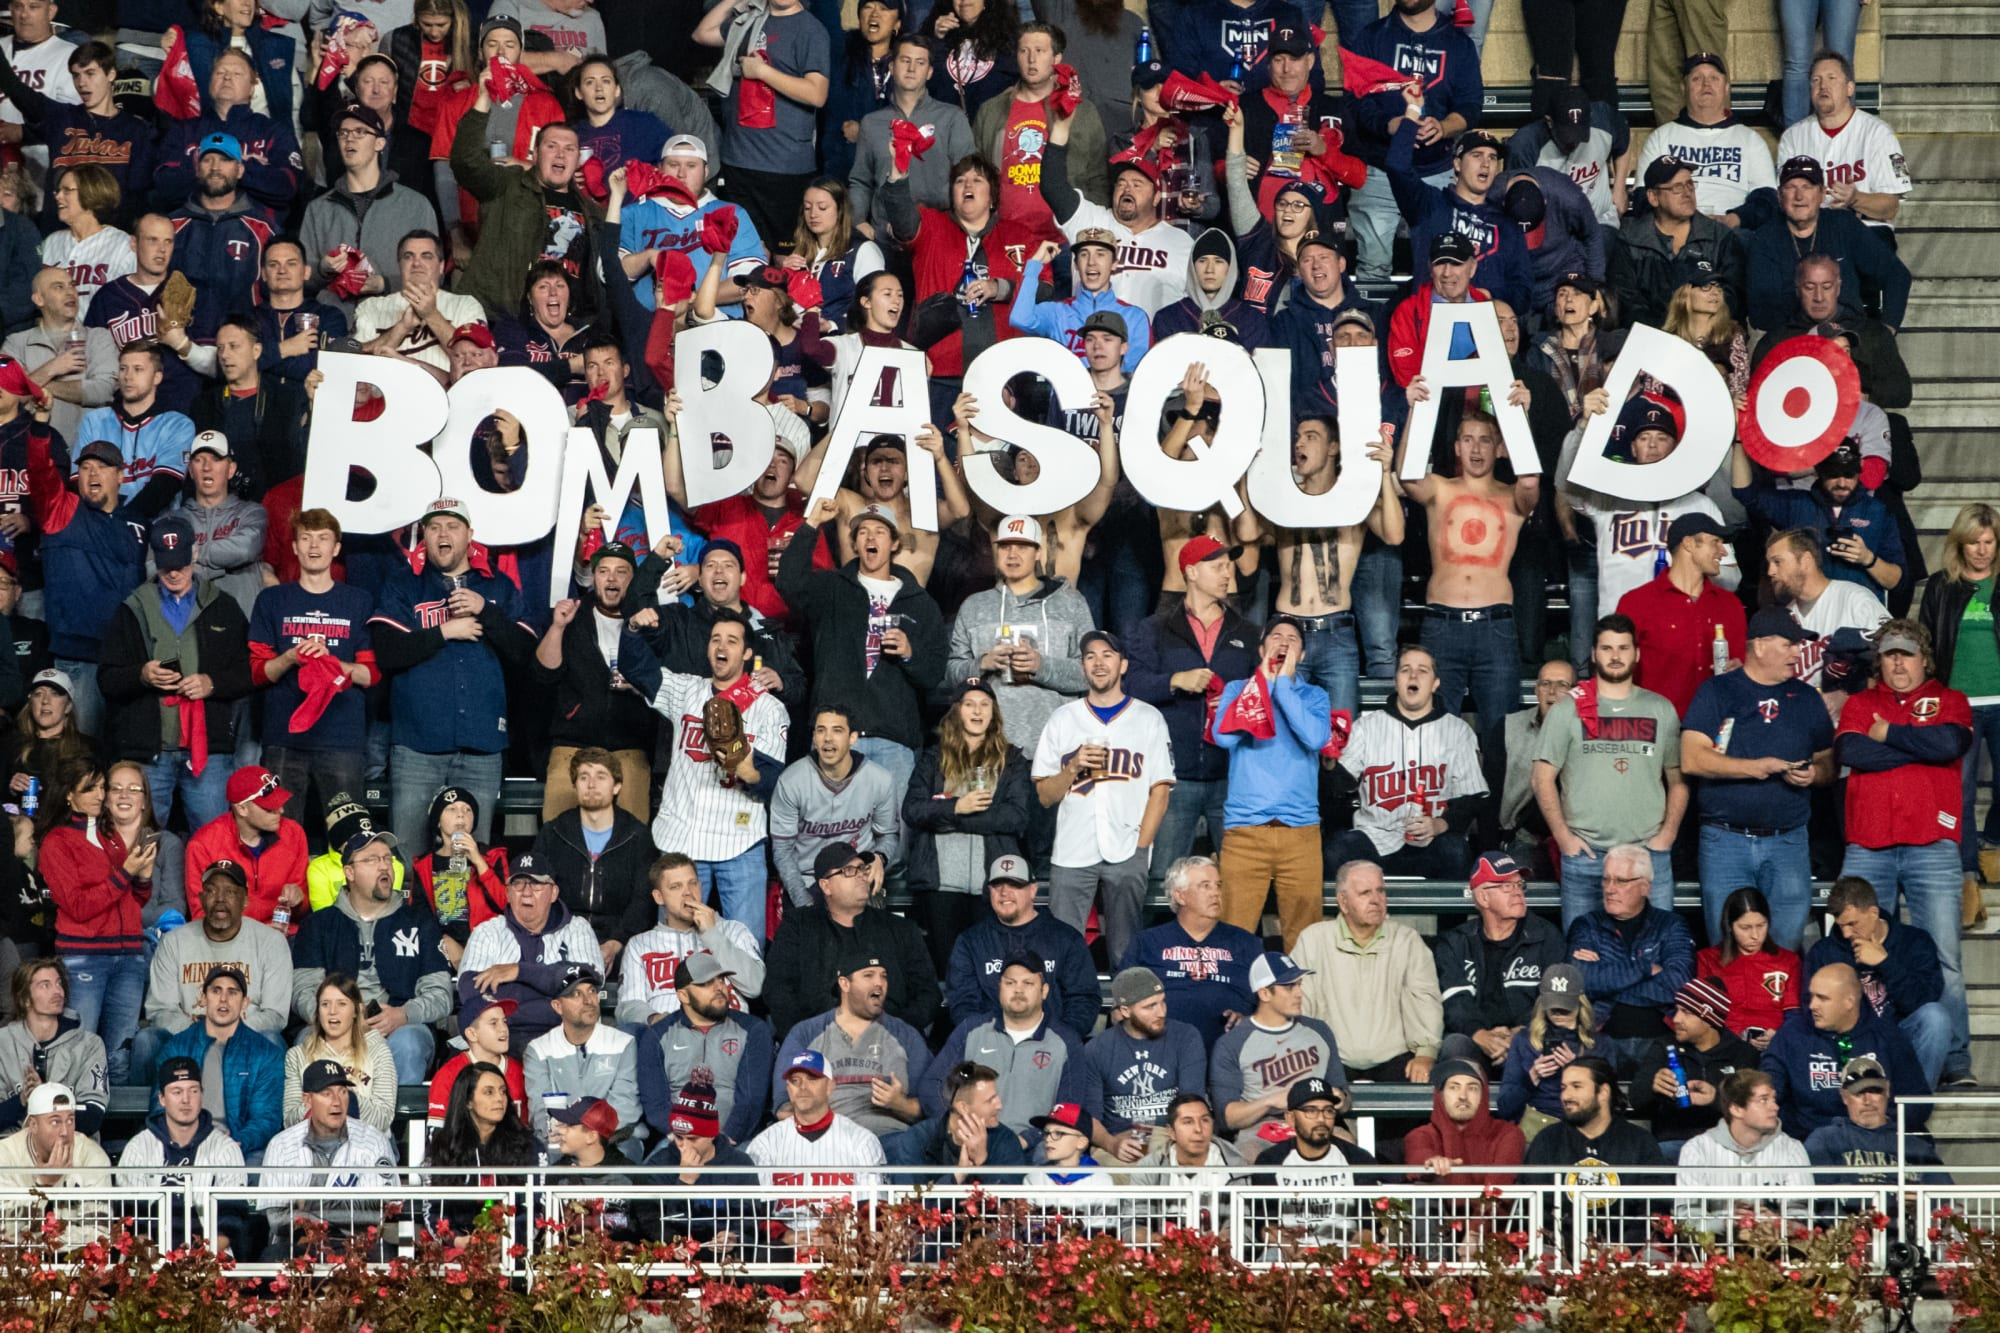 Minnesota Twins fans answer Questions about the Team